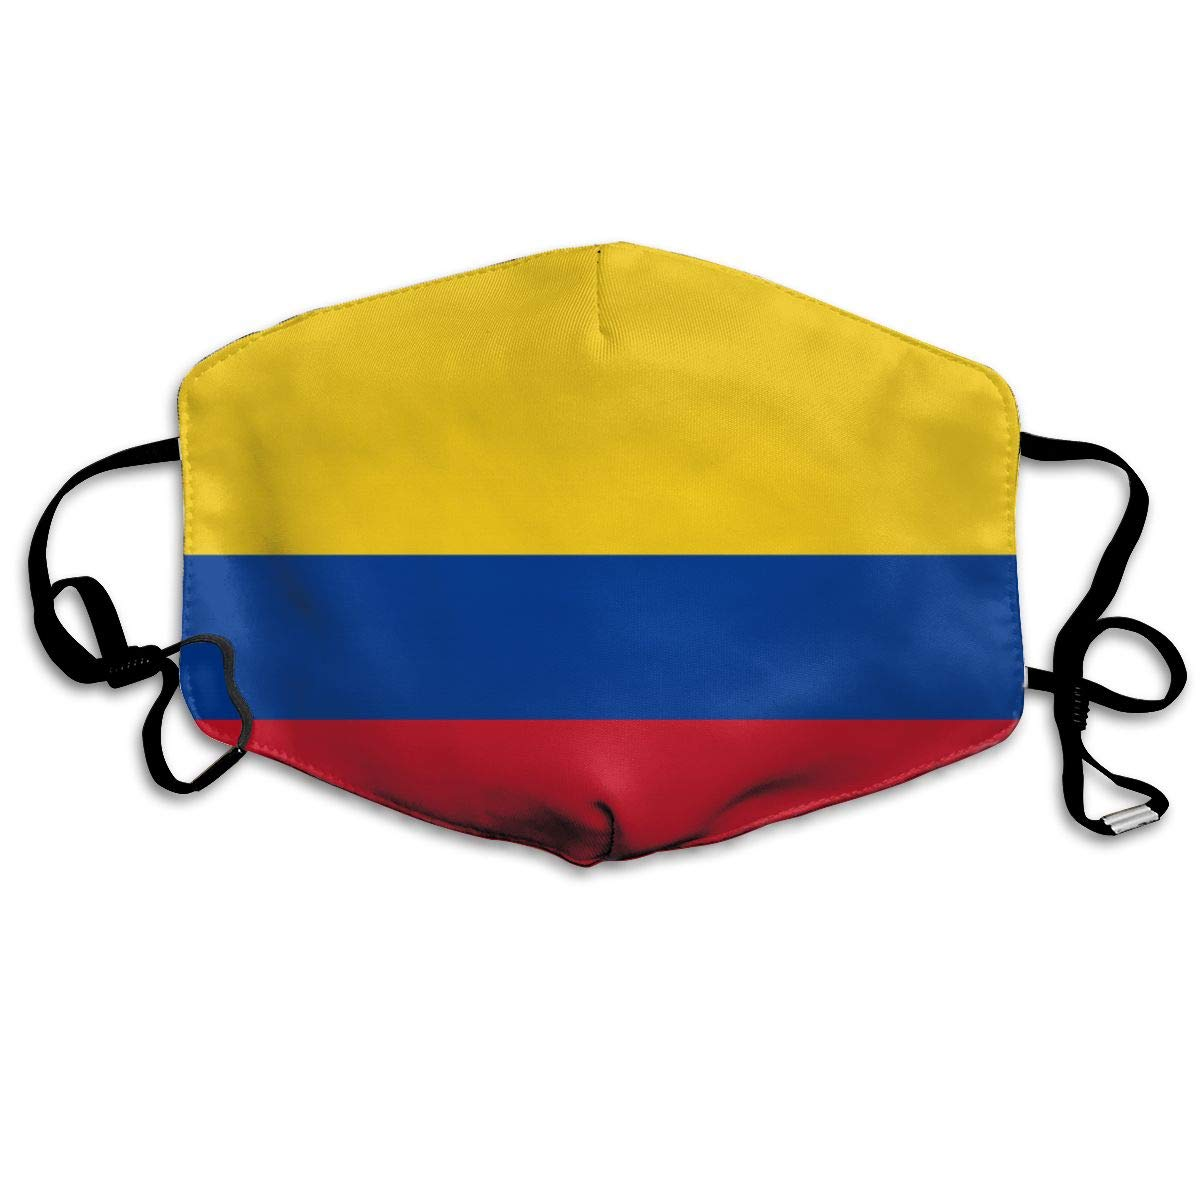 Colombia Flags Of Countries Washable Reusable   Mask, Cotton Anti Dust Half Face Mouth Mask For Kids Teens Men Women With